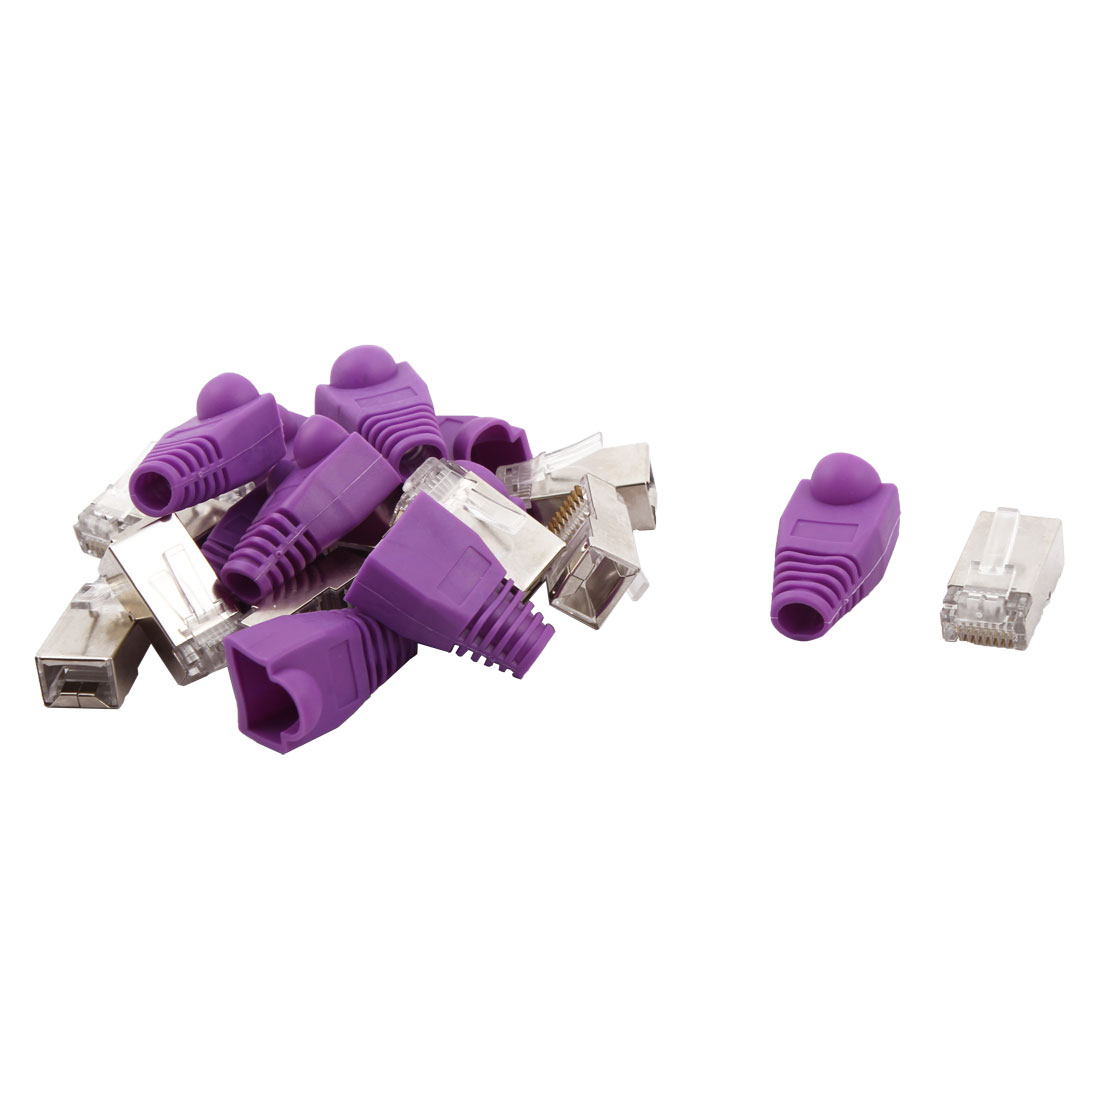 DIY RJ45 8P8C Shield Modular Ethernet Adapter Connector Purple 10pcs w Boot Guard